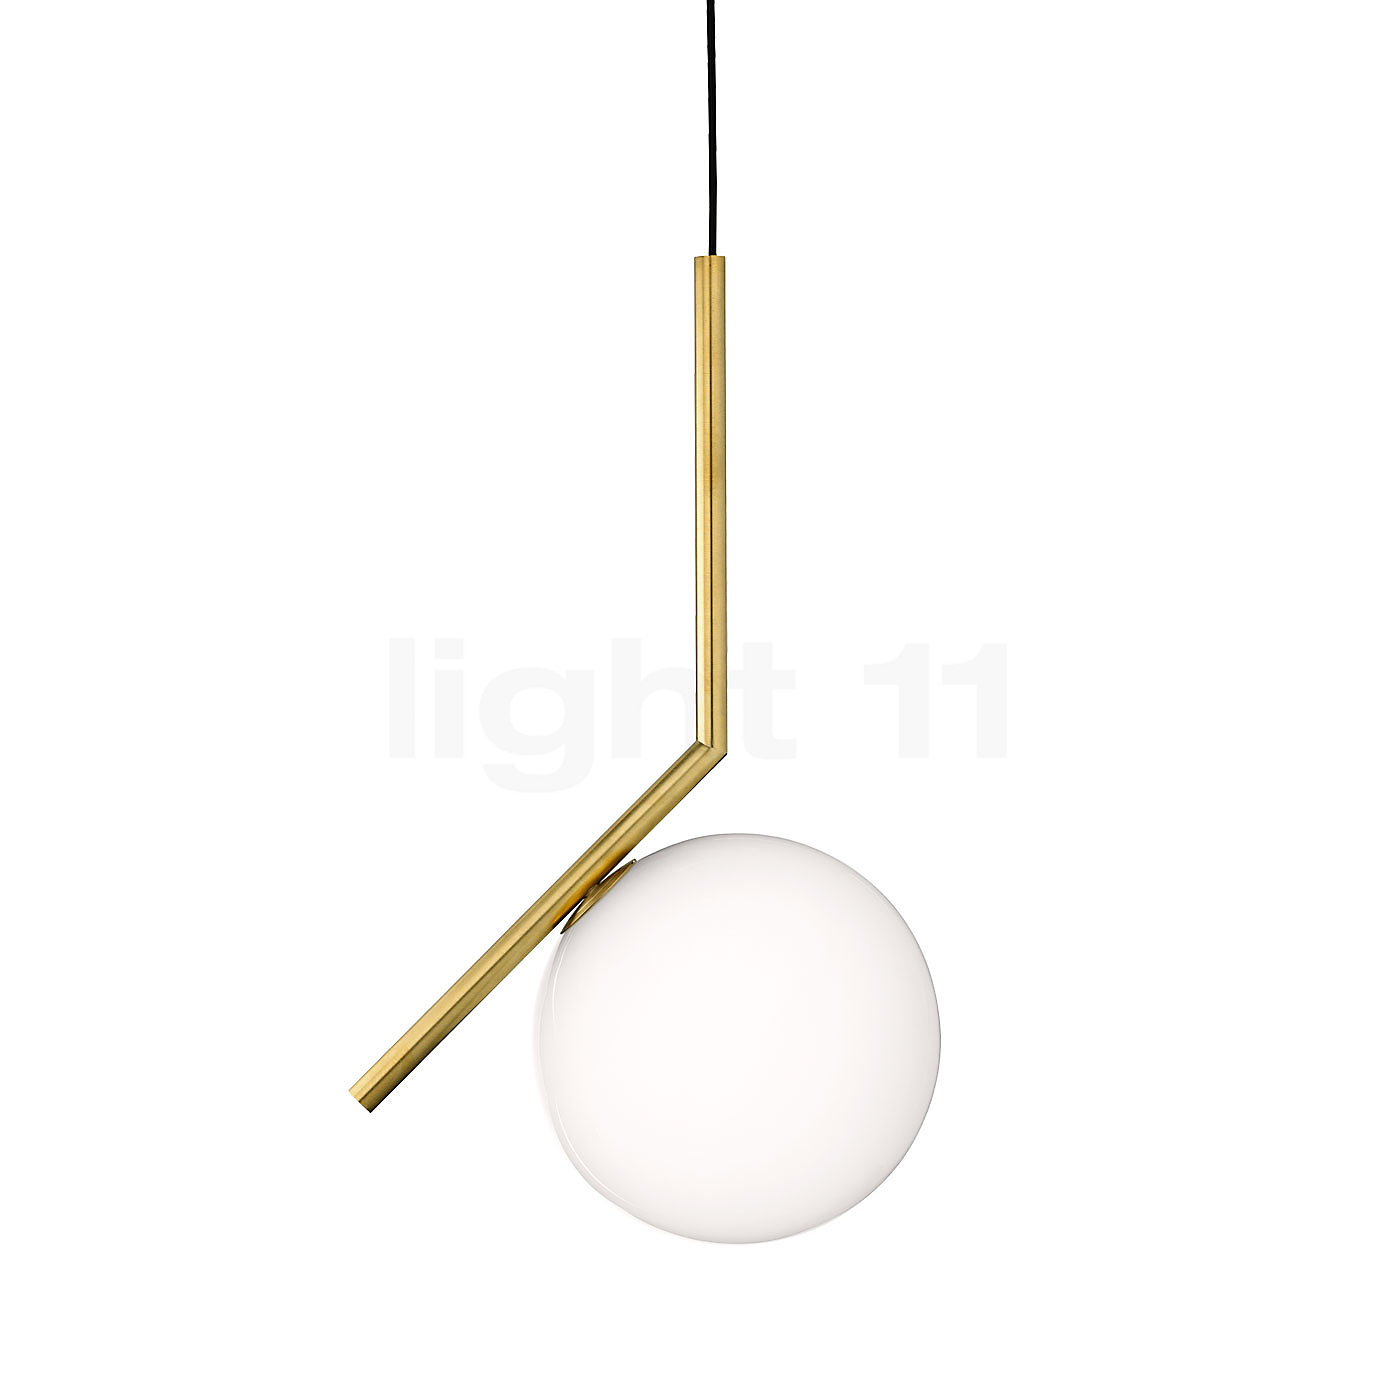 flos ic lights s2 pendant lights lamps lights. Black Bedroom Furniture Sets. Home Design Ideas